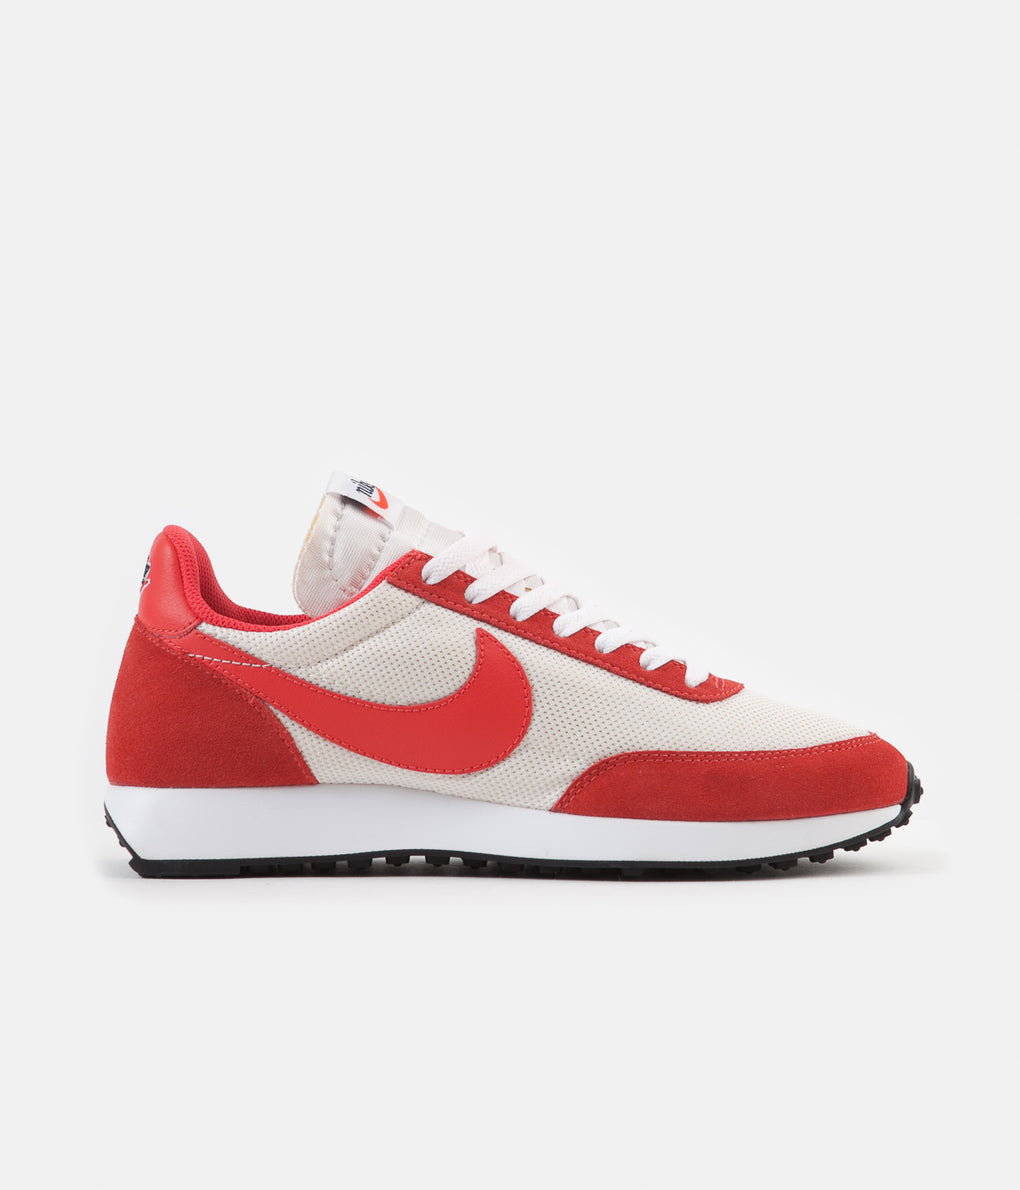 Nike Air Tailwind 79 Shoes - Sail / Track Red - White - Habanero Red